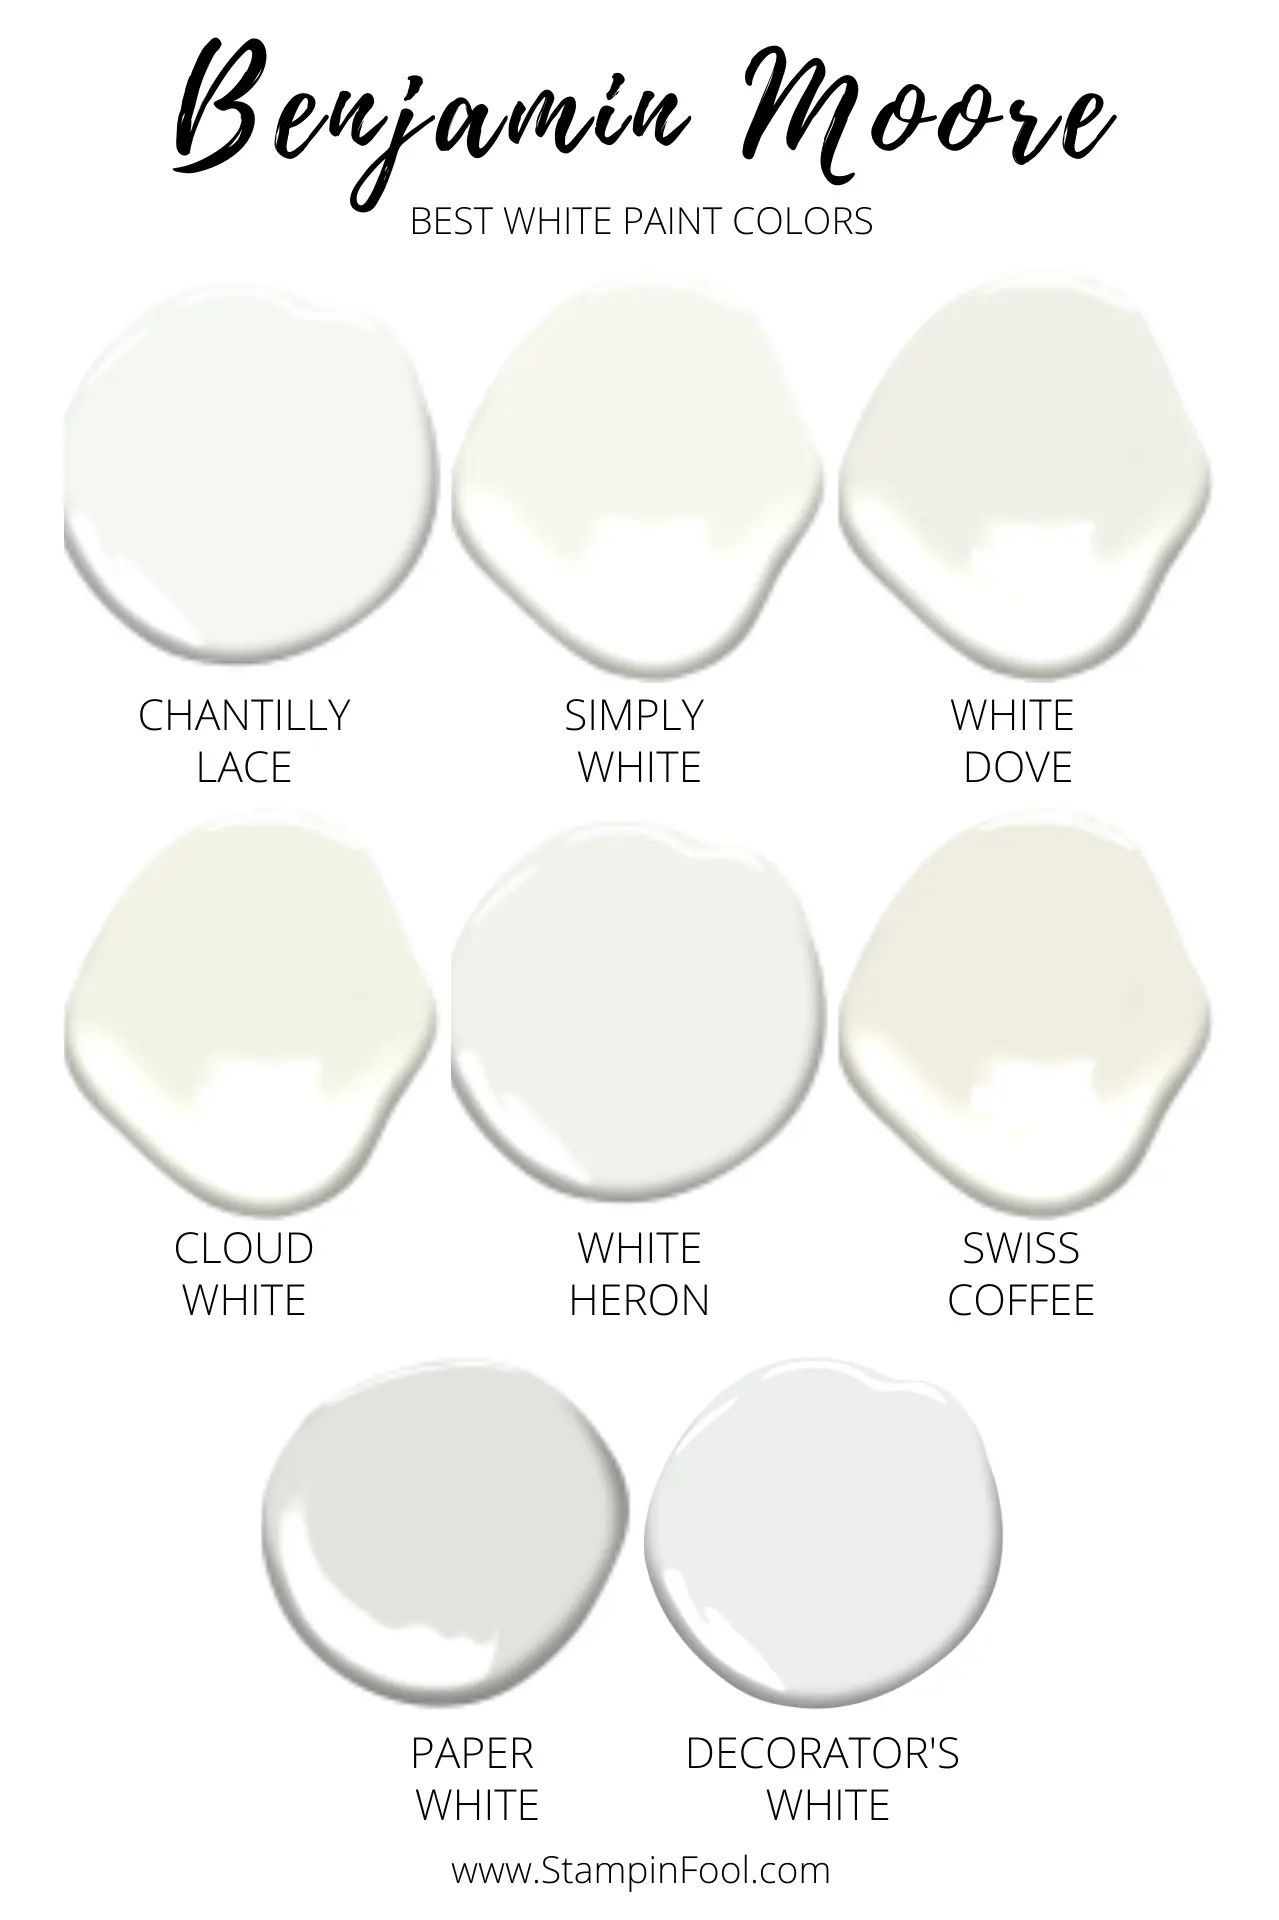 THE BEST 8 BENJAMIN MOORE WHITE PAINT COLORS IN 2020 |